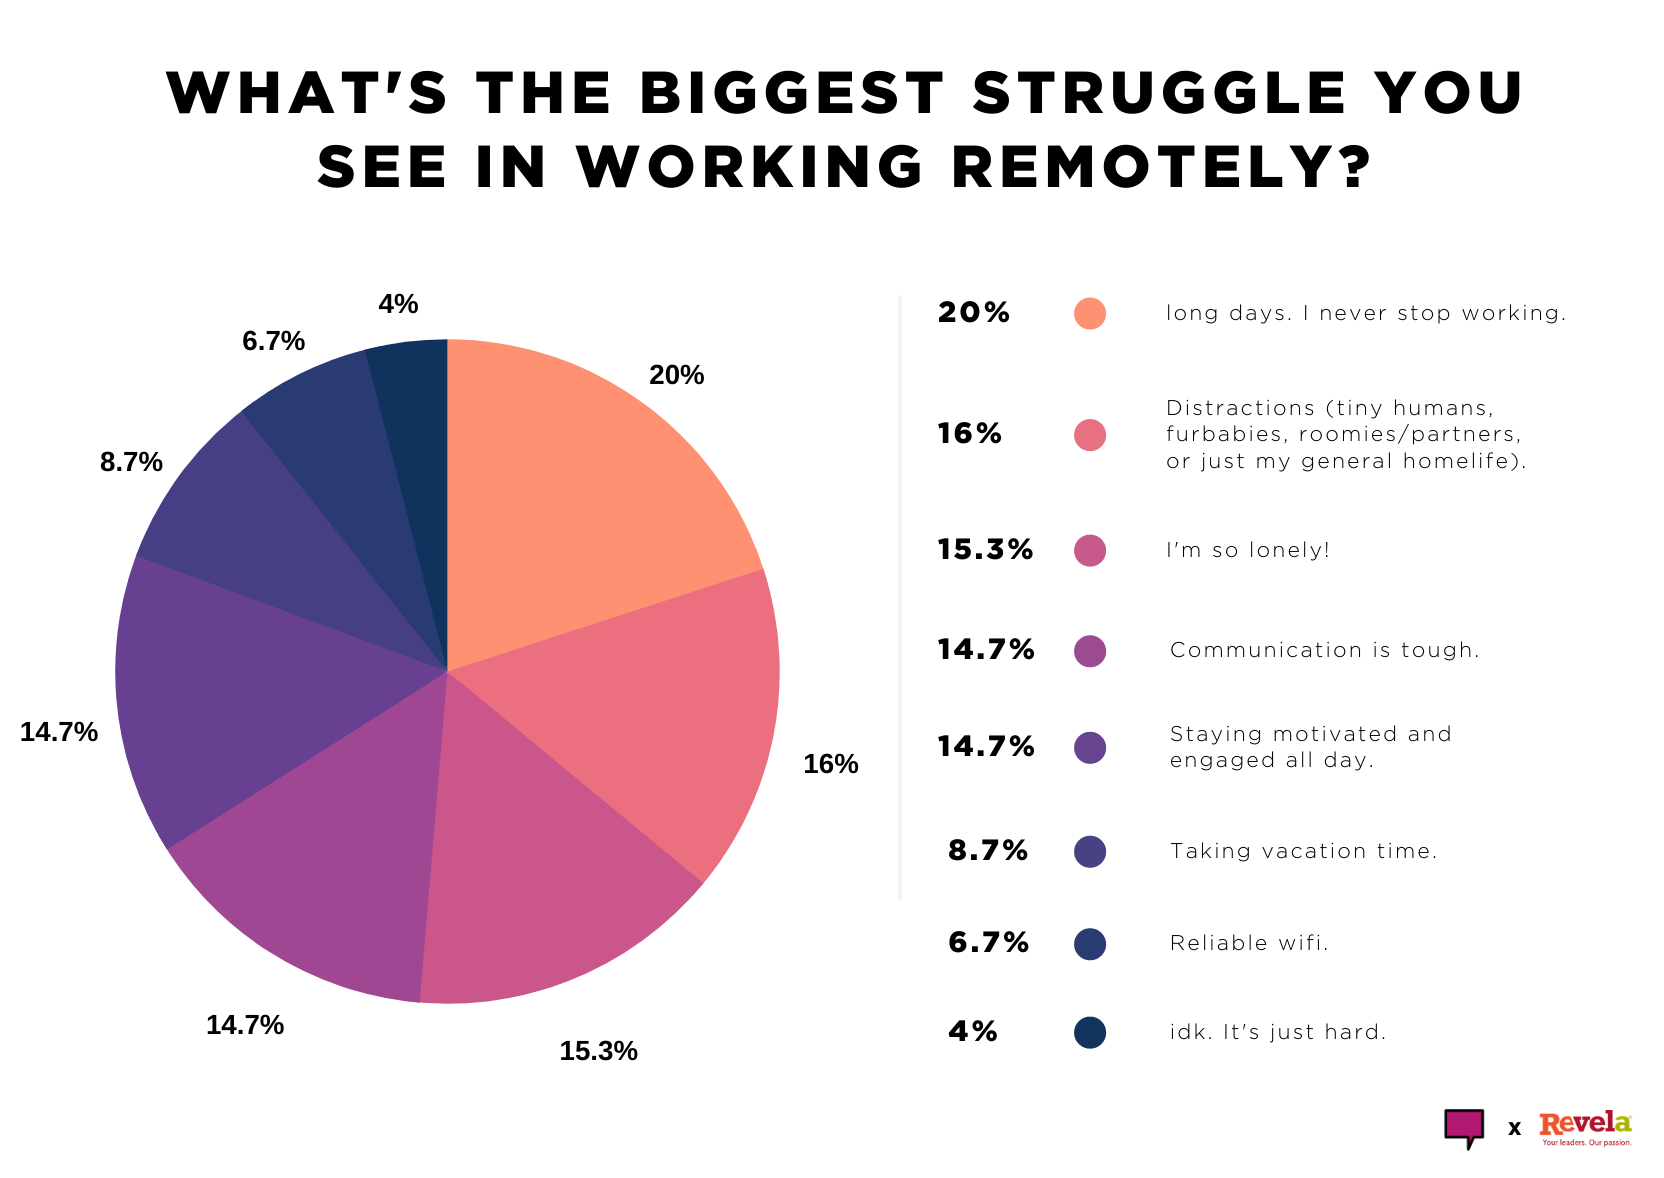 What's the biggest struggle you see in working remotely?